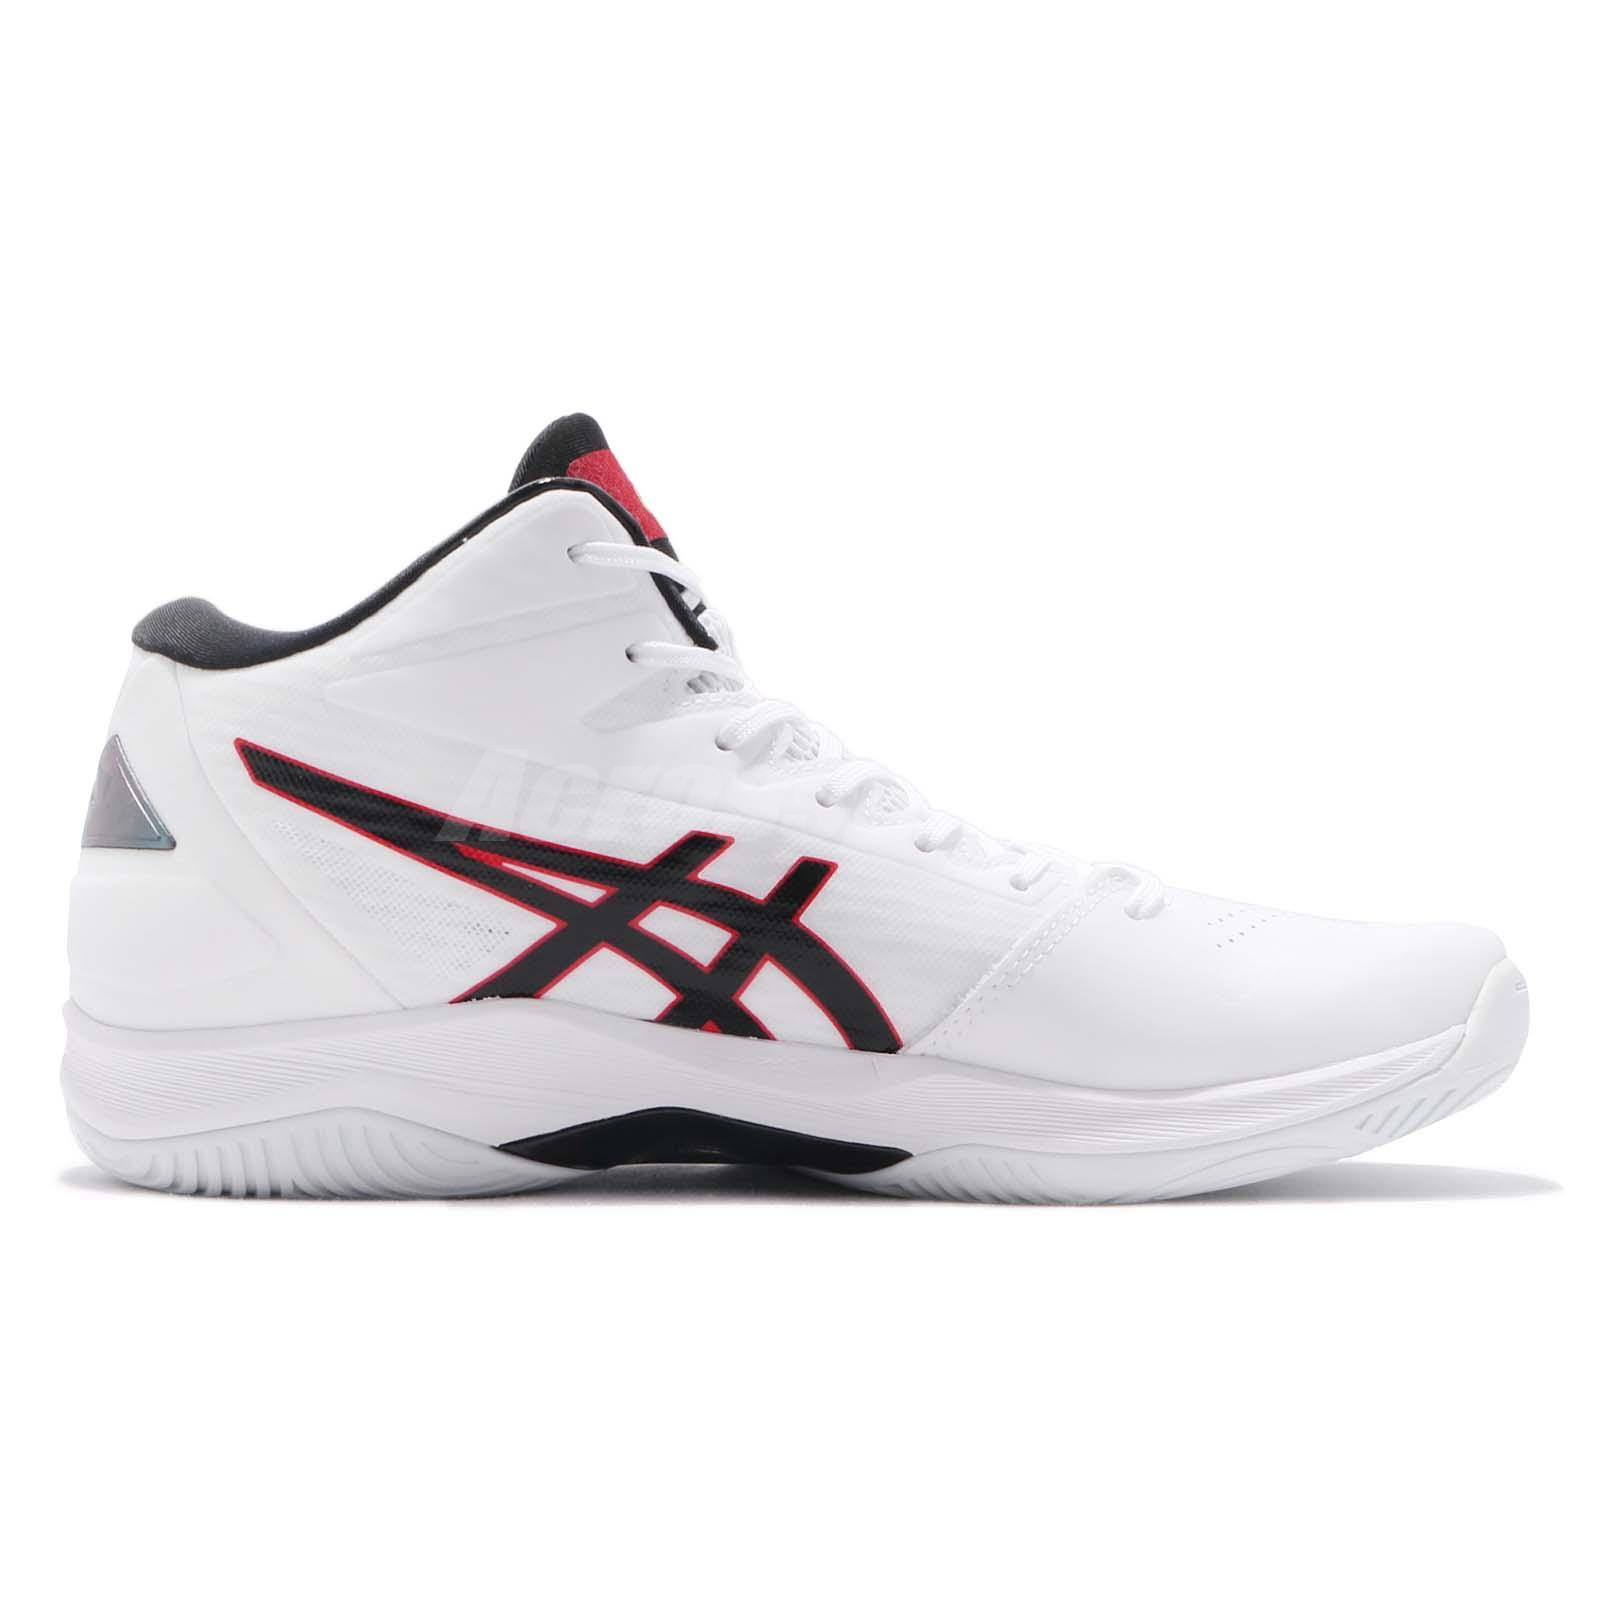 Men's Shoes Clothing, Shoes & Accessories Asics Gelhoop V11 White Black Red Men Basketball Shoes Sneakers 1061a015-116